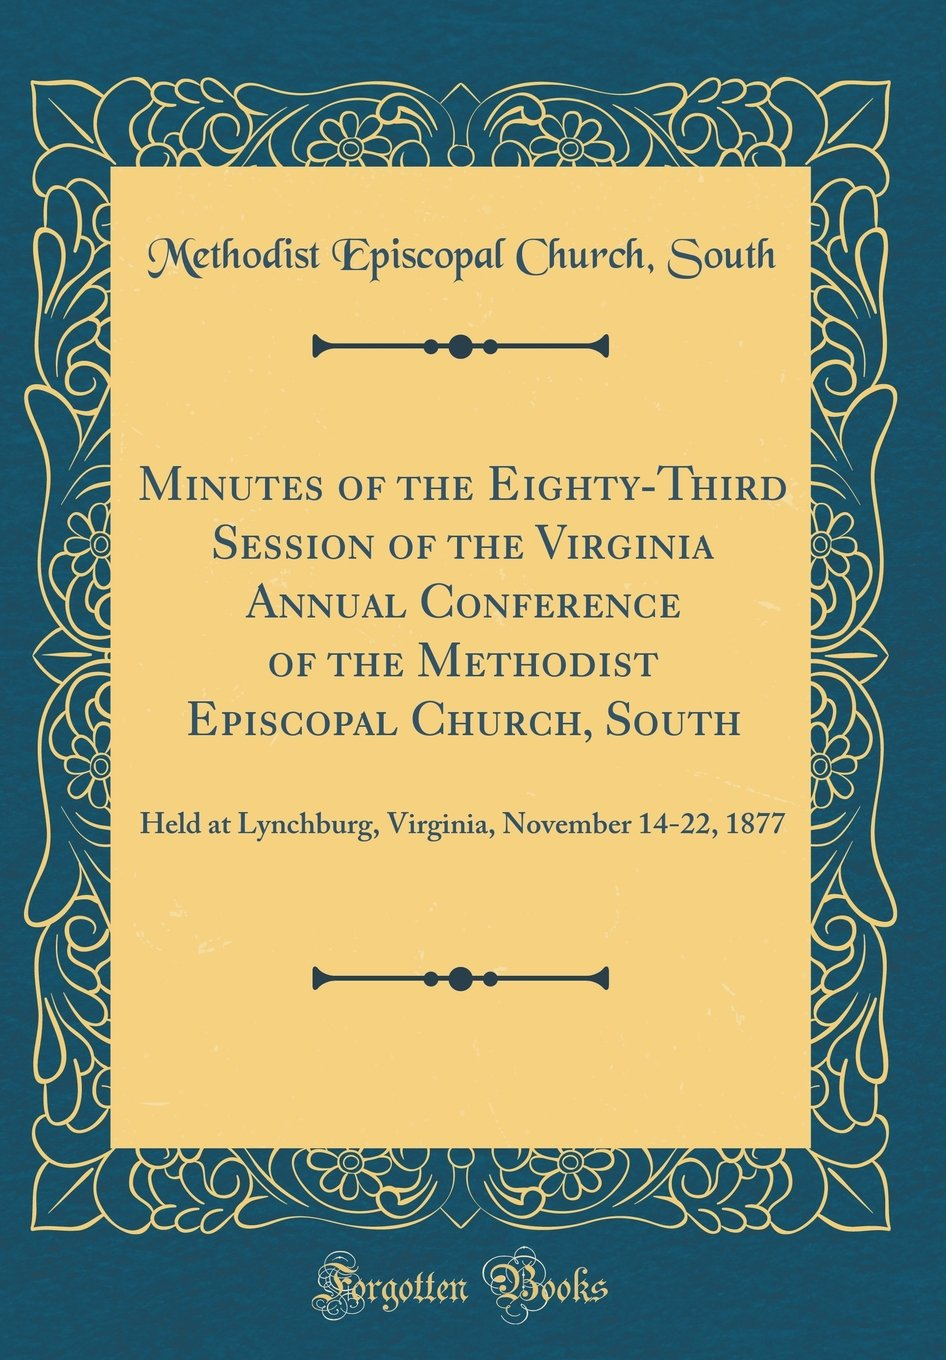 Download Minutes of the Eighty-Third Session of the Virginia Annual Conference of the Methodist Episcopal Church, South: Held at Lynchburg, Virginia, November 14-22, 1877 (Classic Reprint) PDF